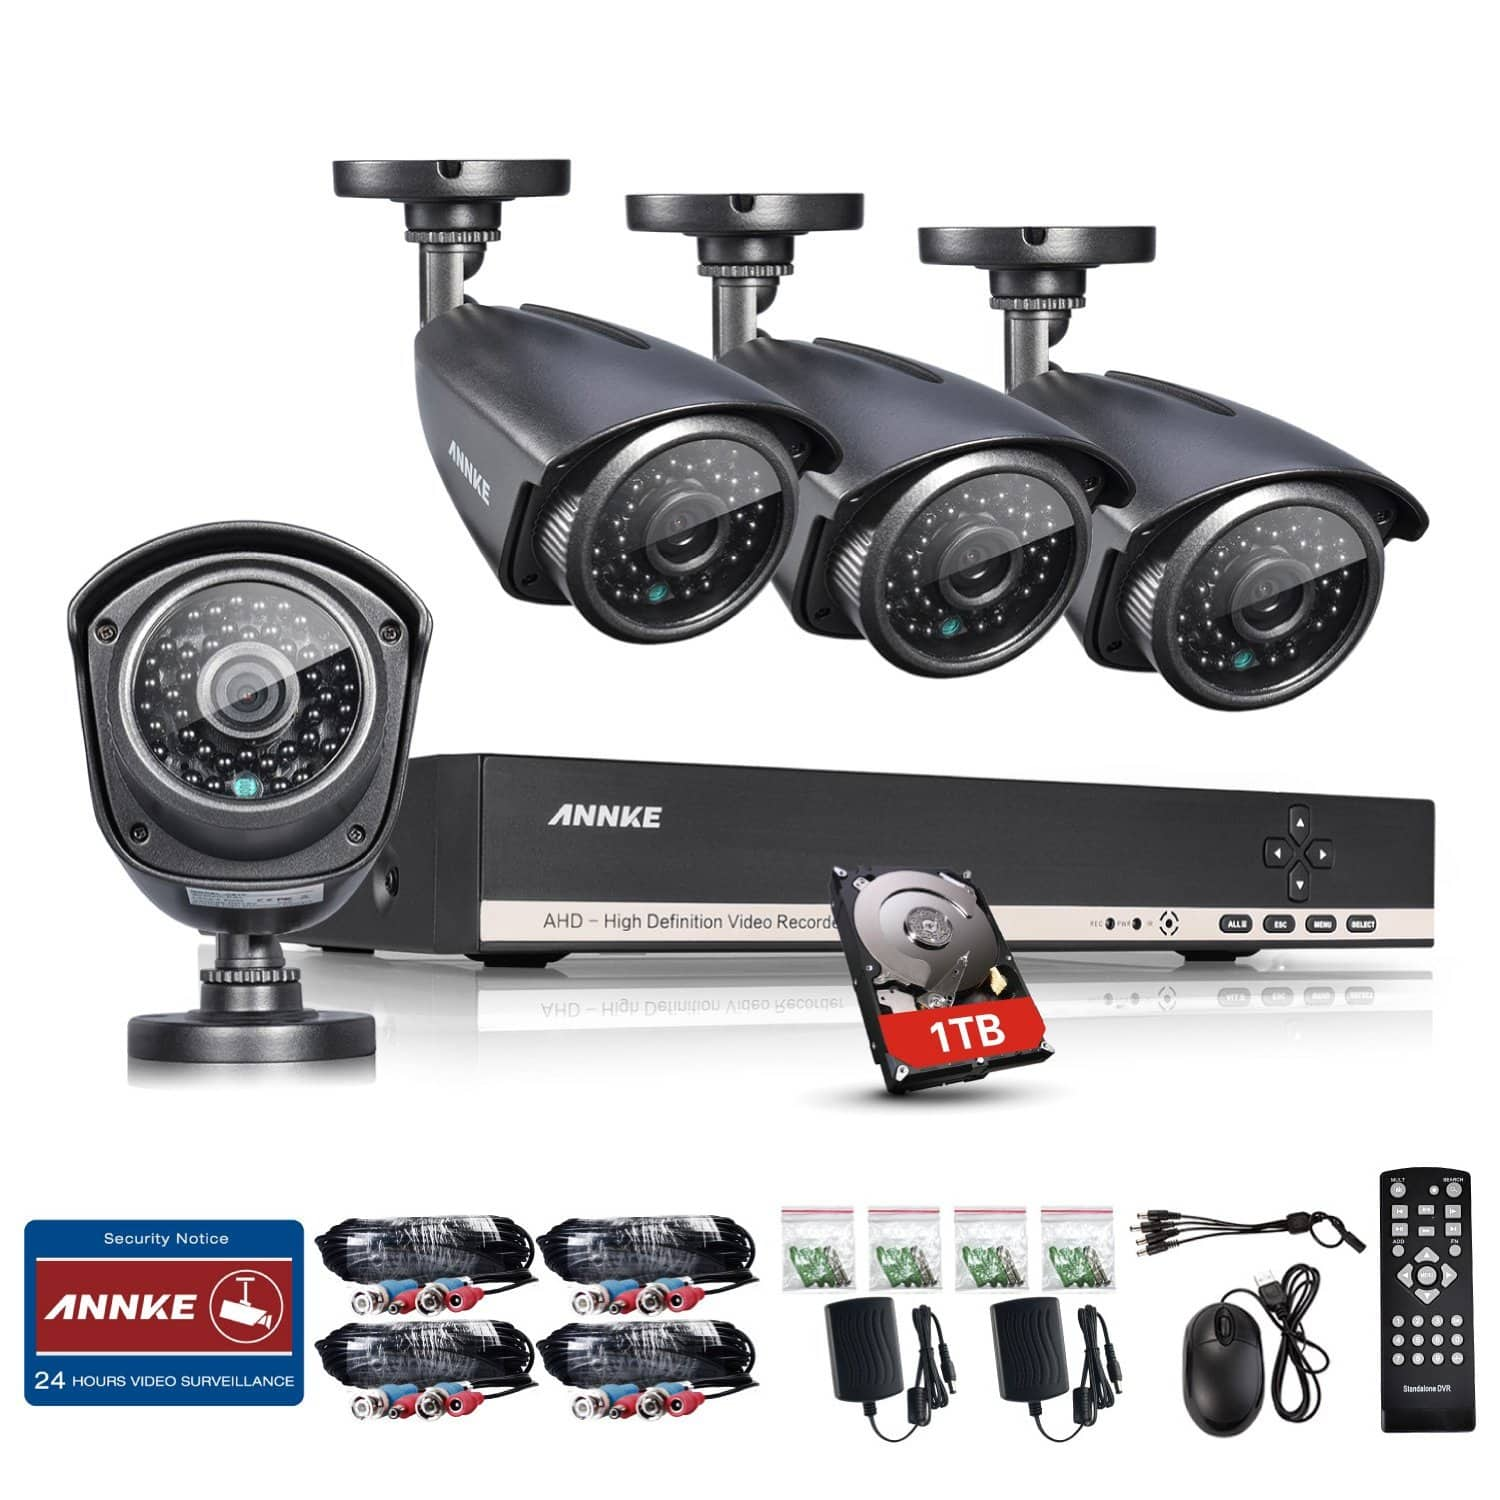 Annke 8CH 1080N 960*1080 Security DVR + 1TB Hard Drive Weatherproof Bullet Cameras Only $169.99 + Free Amazon Shipping